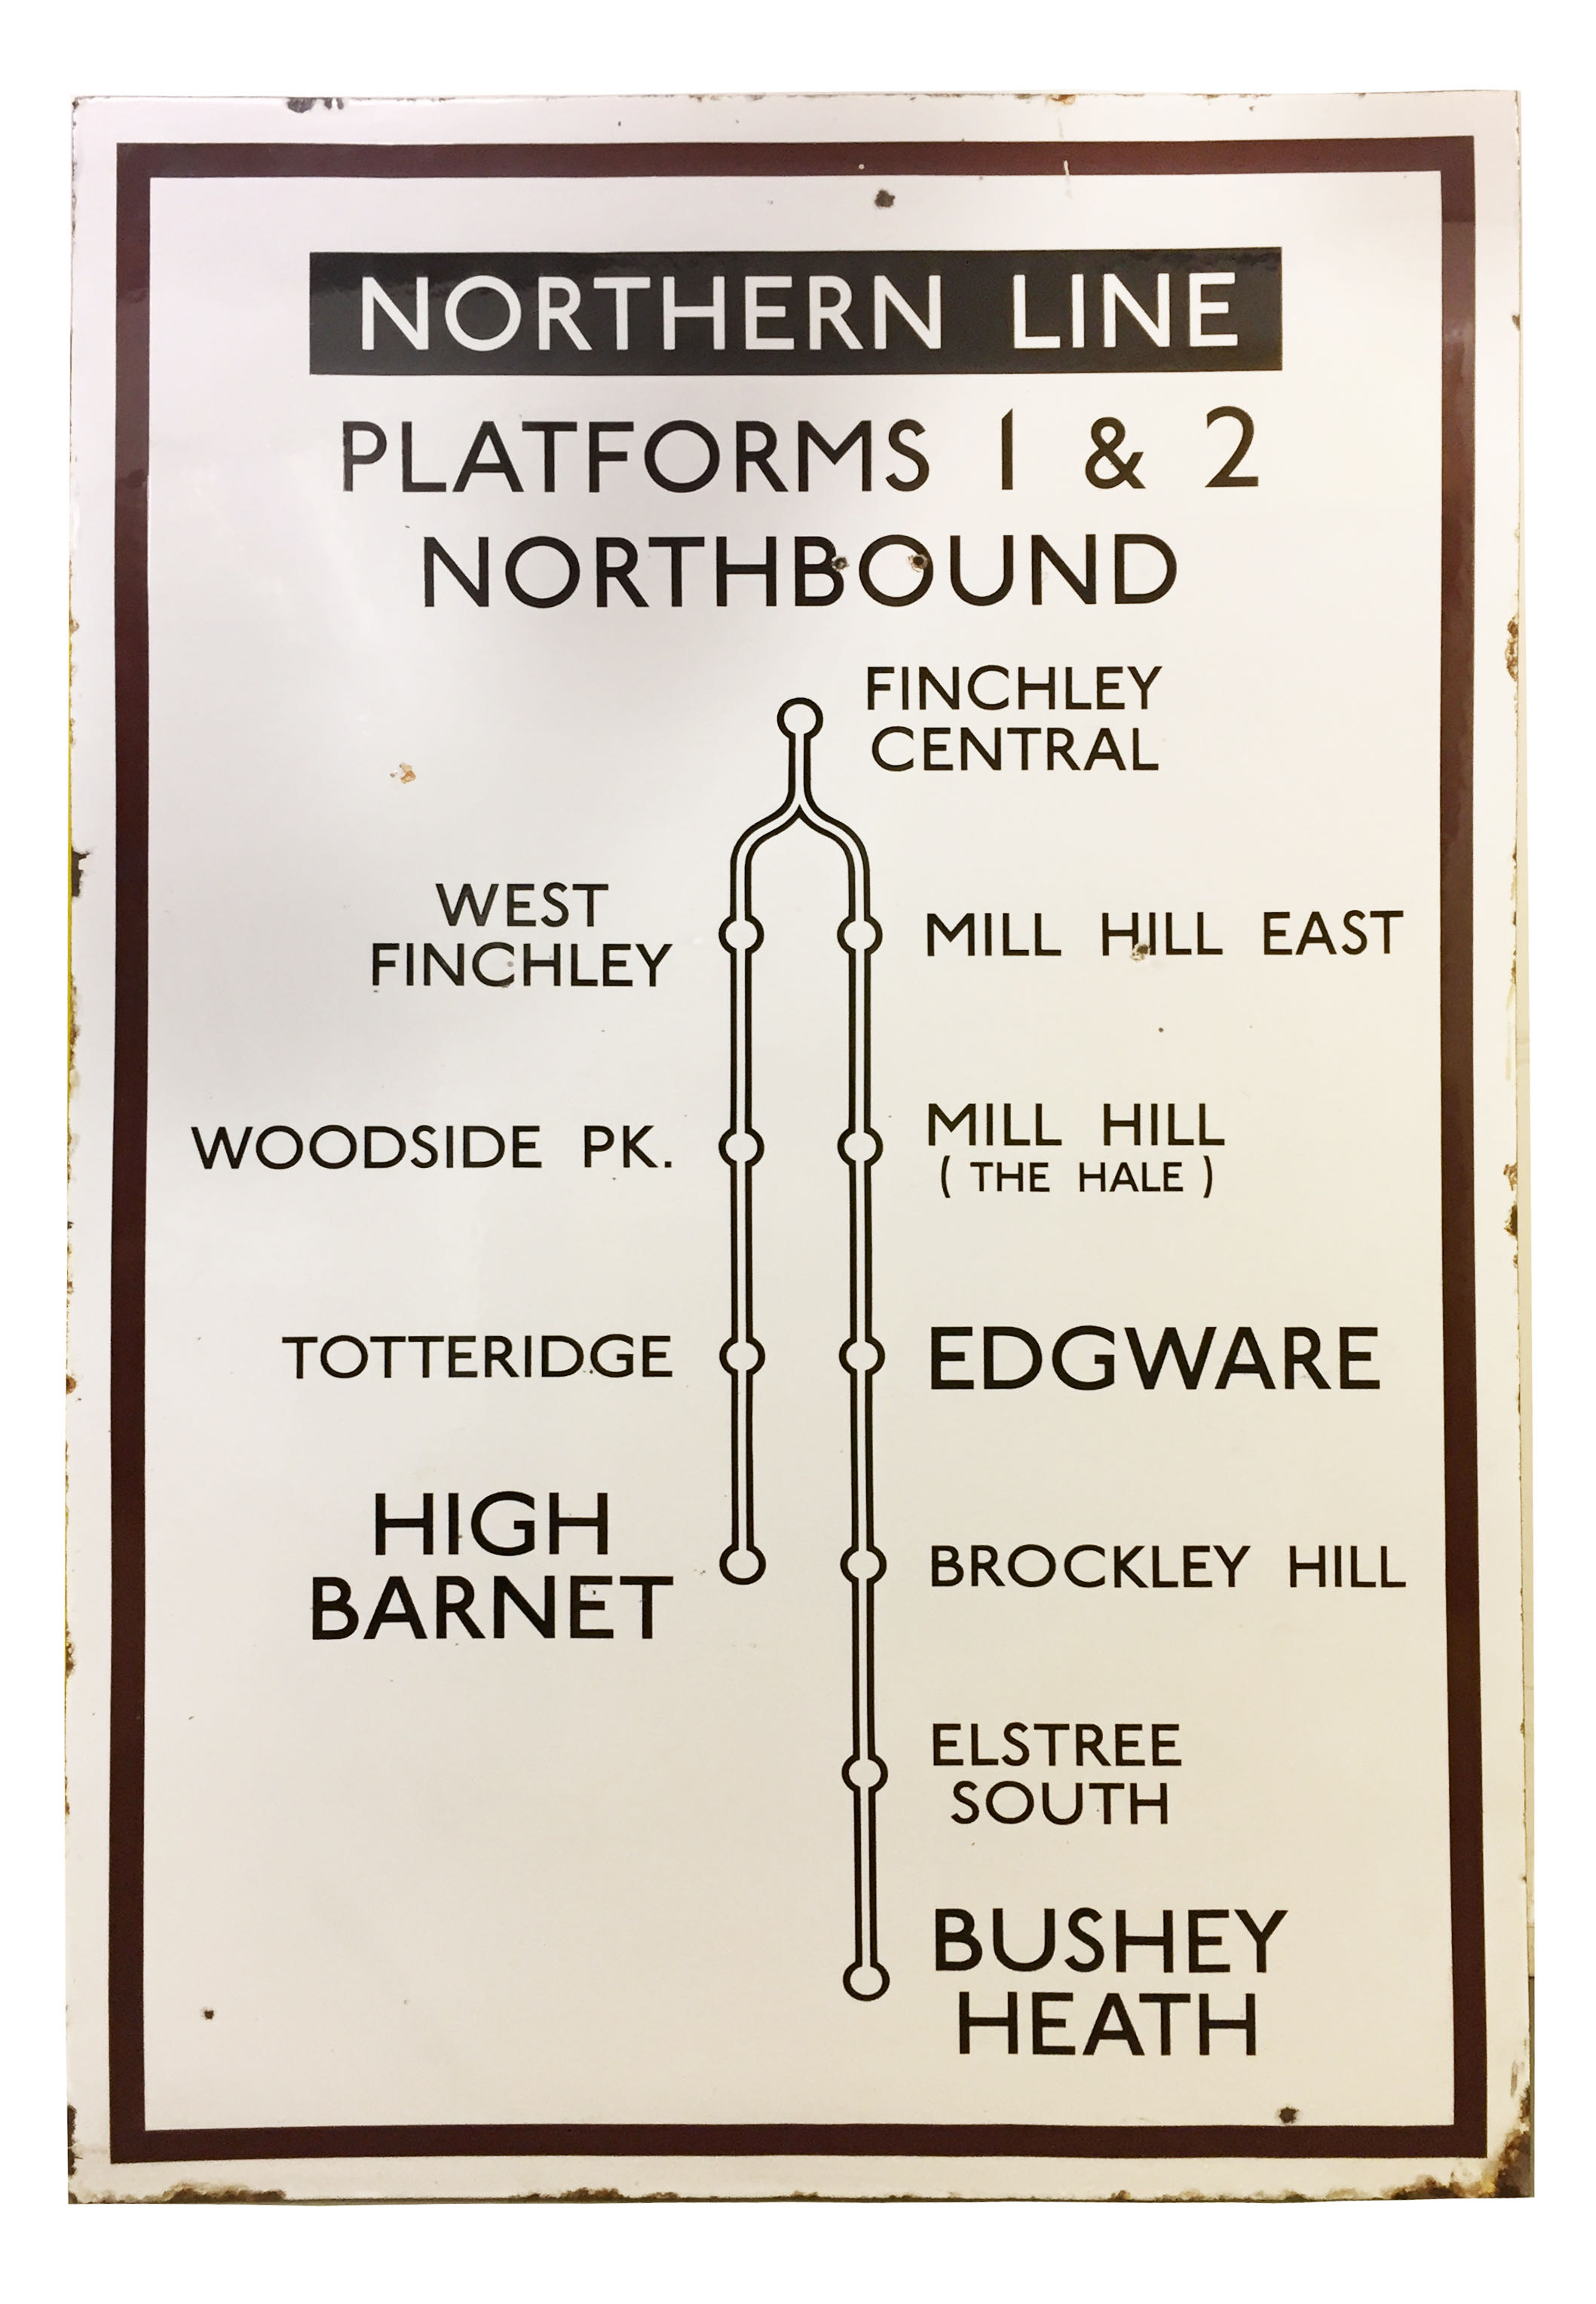 A 1930s London Underground enamel direction sign from East Finchley station displaying 'NORTHERN